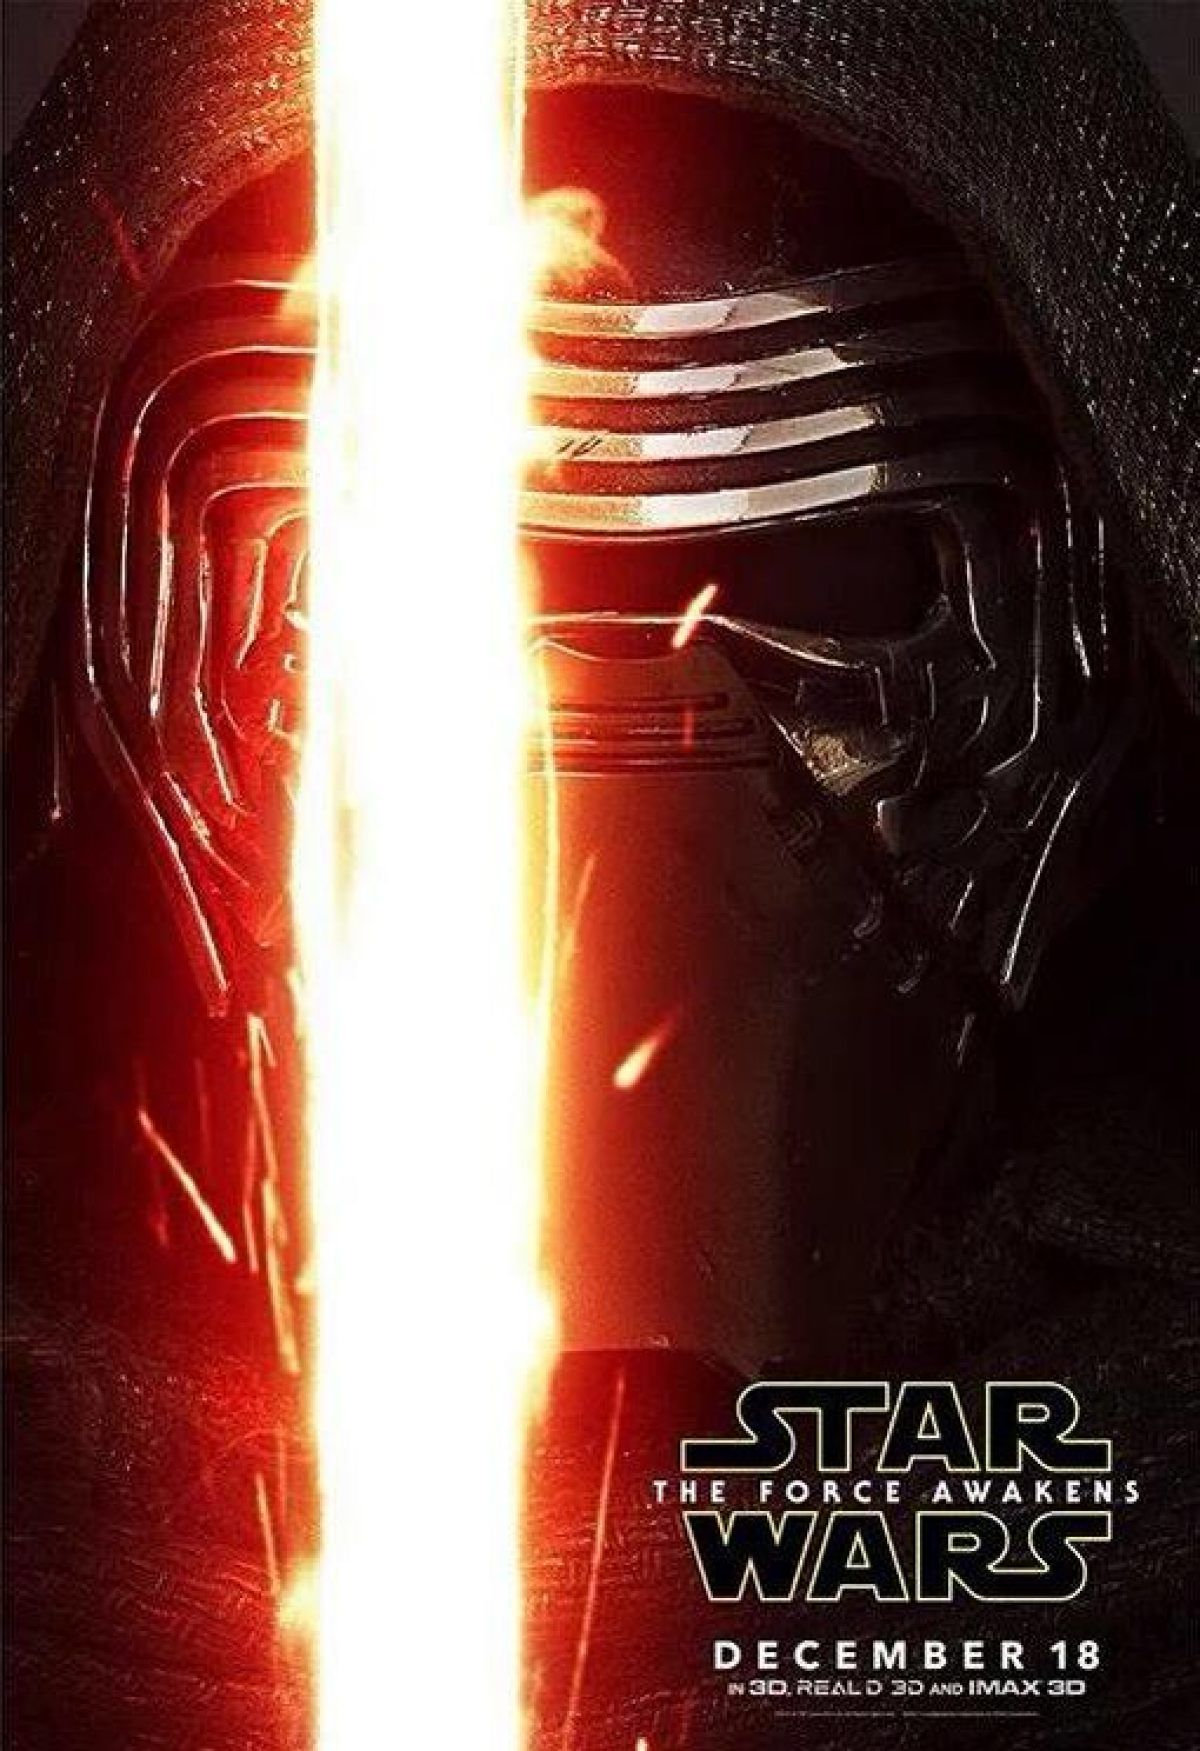 STAR WARS: THE FORCE AWAKENS Character Posters!